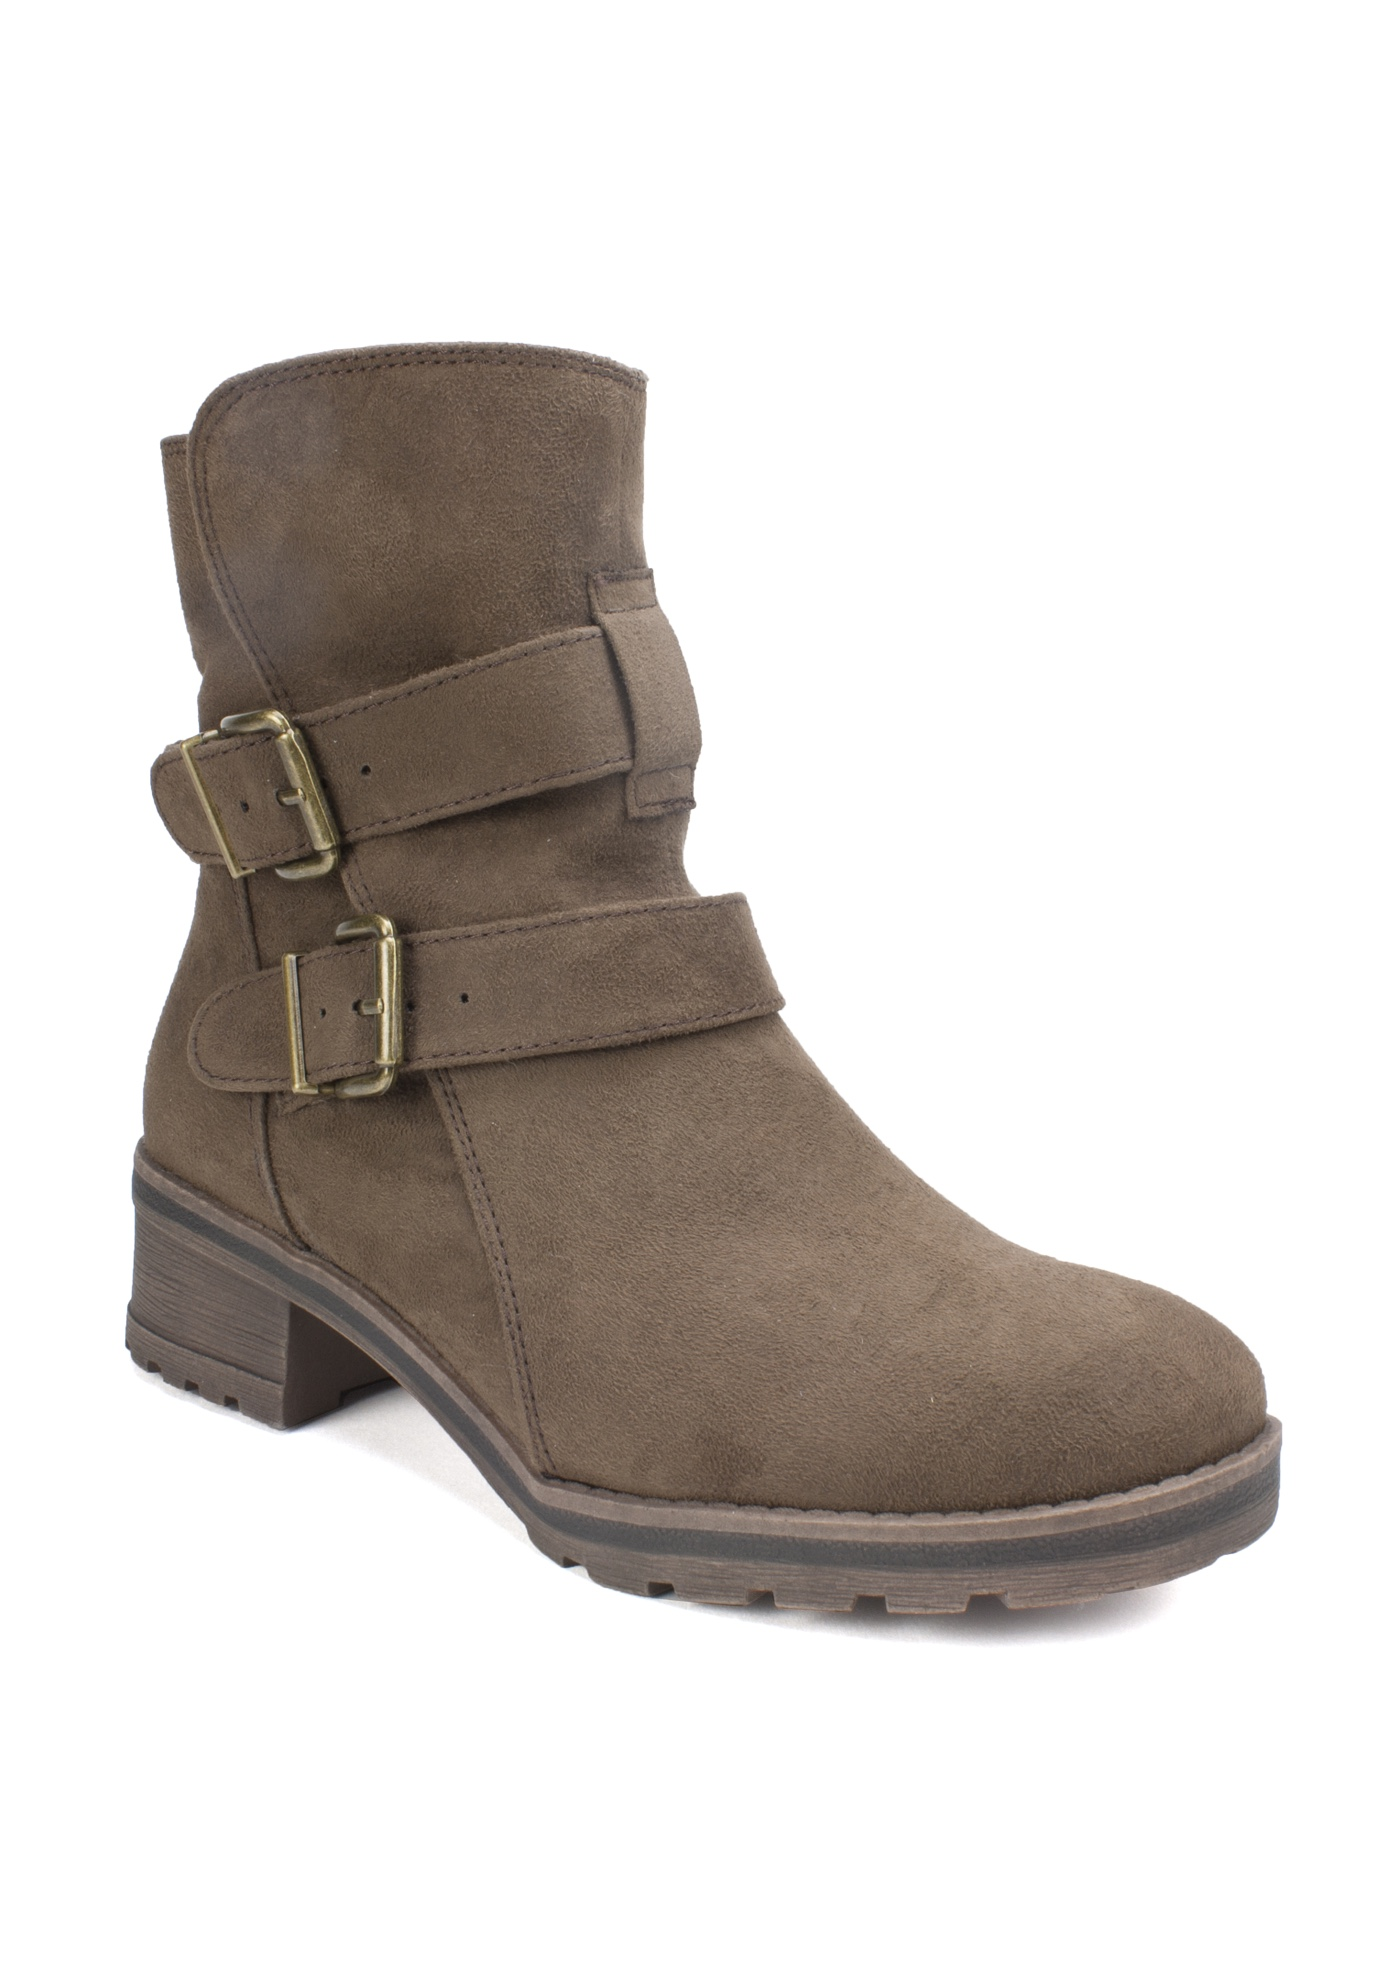 Castity Bootie by White Mountain,